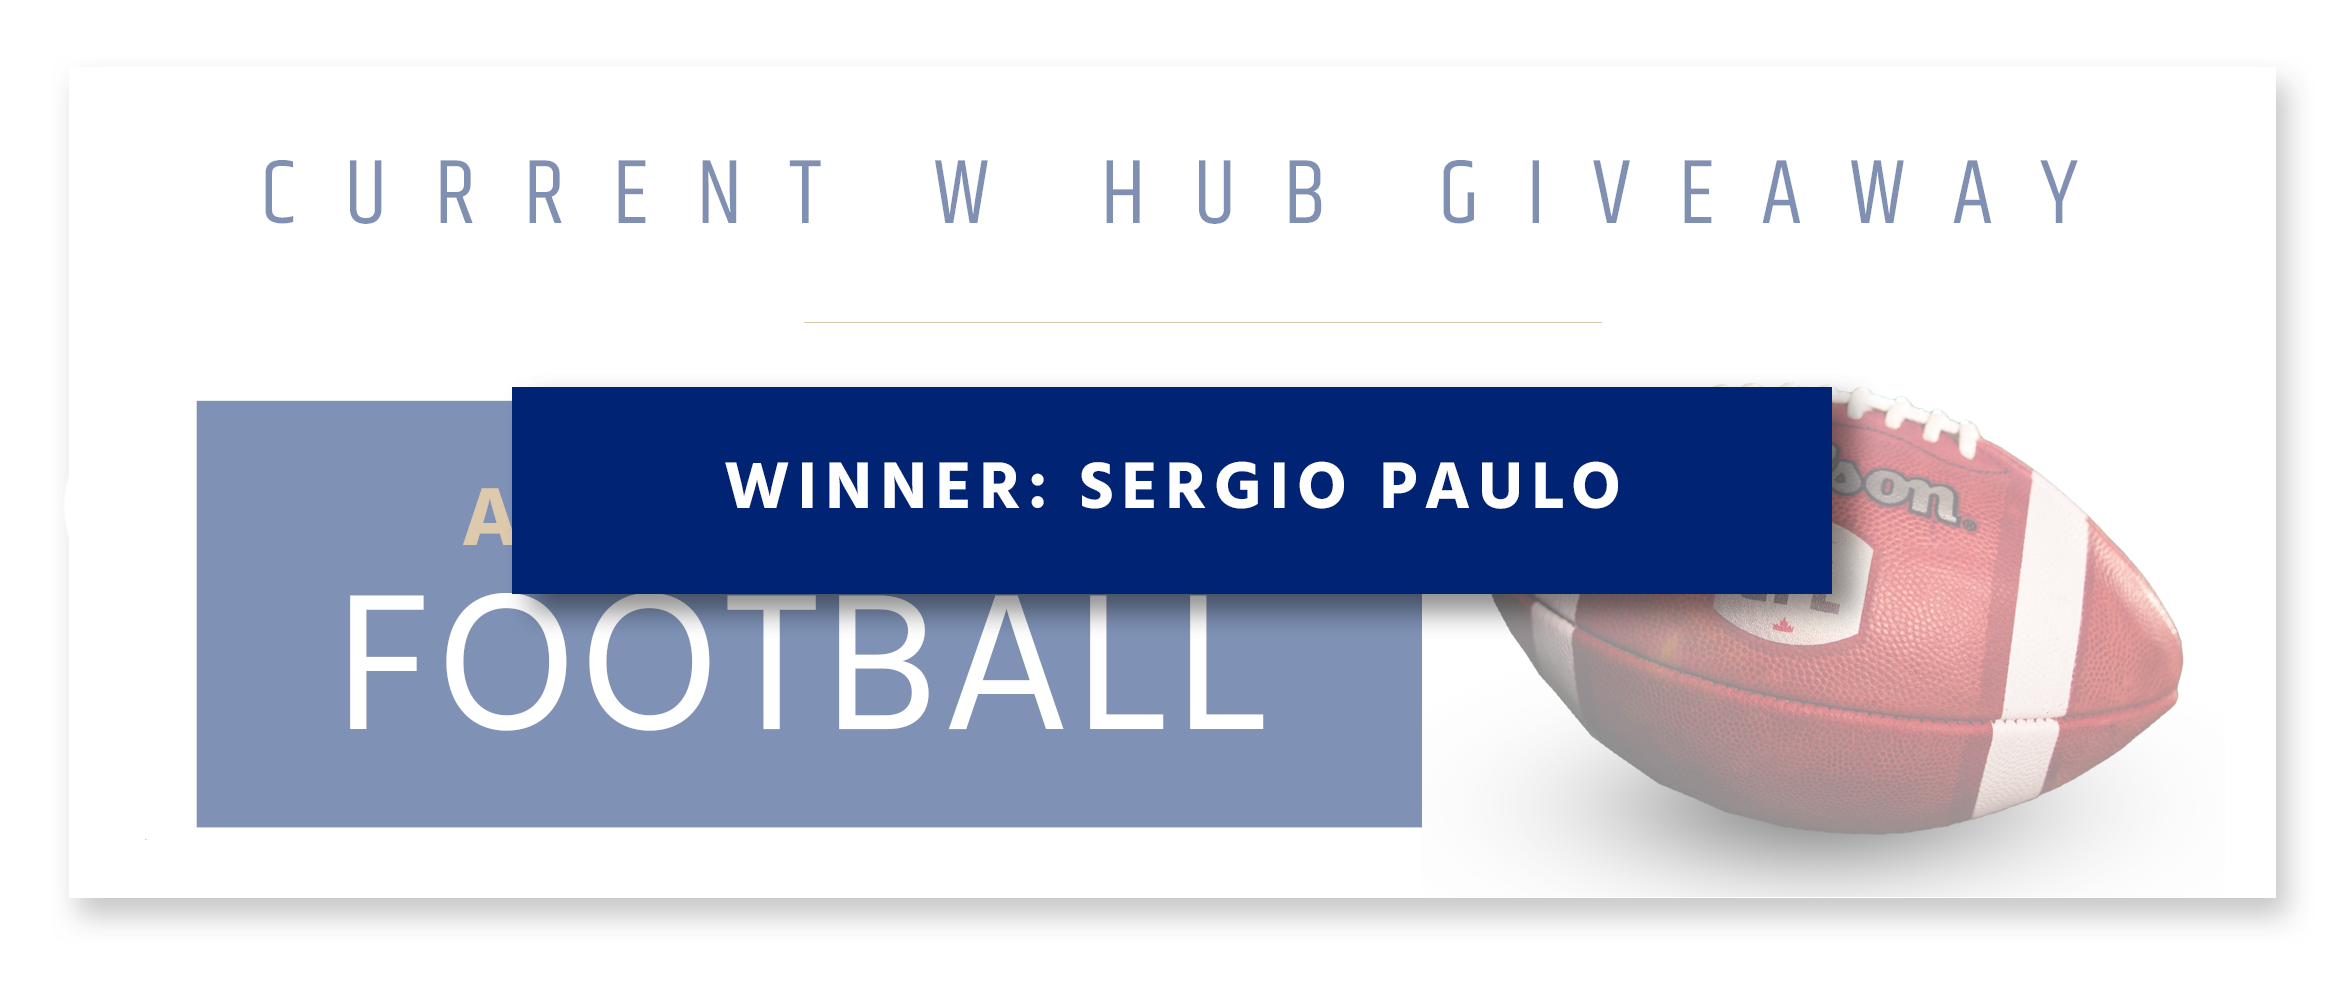 Monthly Giveaway - Autographed Football